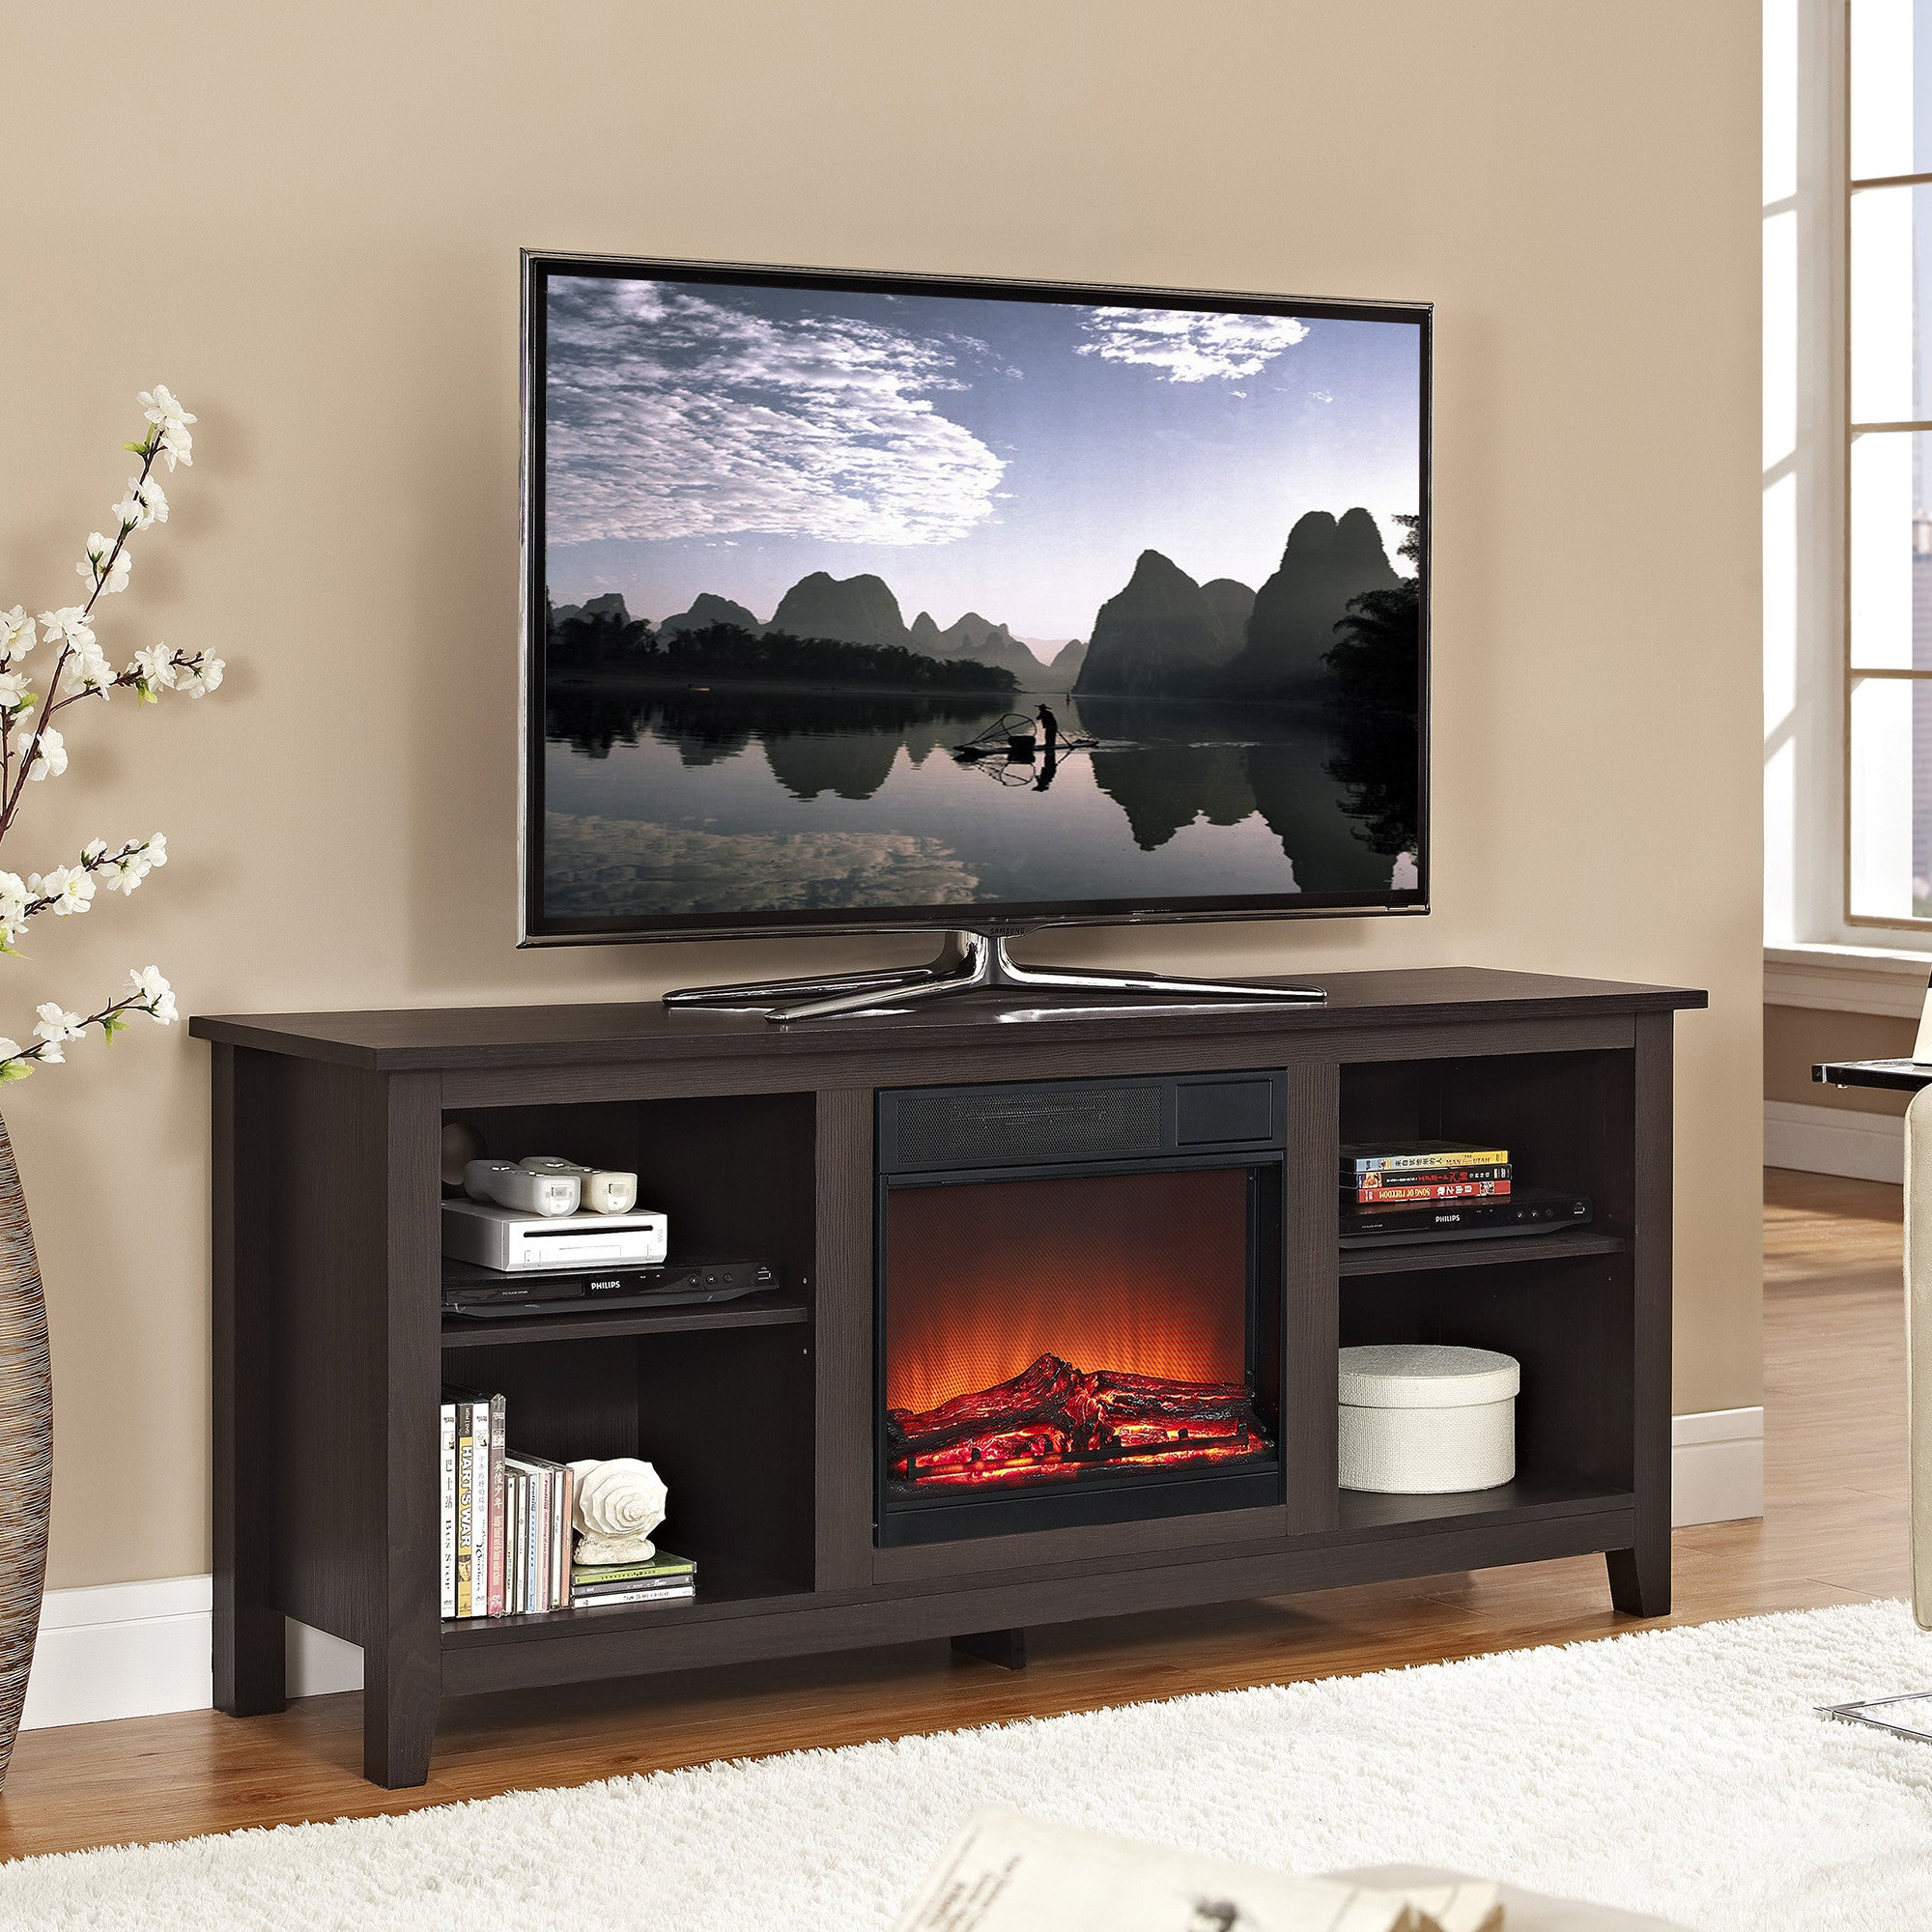 ultra modern  espresso tv stand with integrated electric fireplace. ultra modern  espresso tv stand with integrated electric